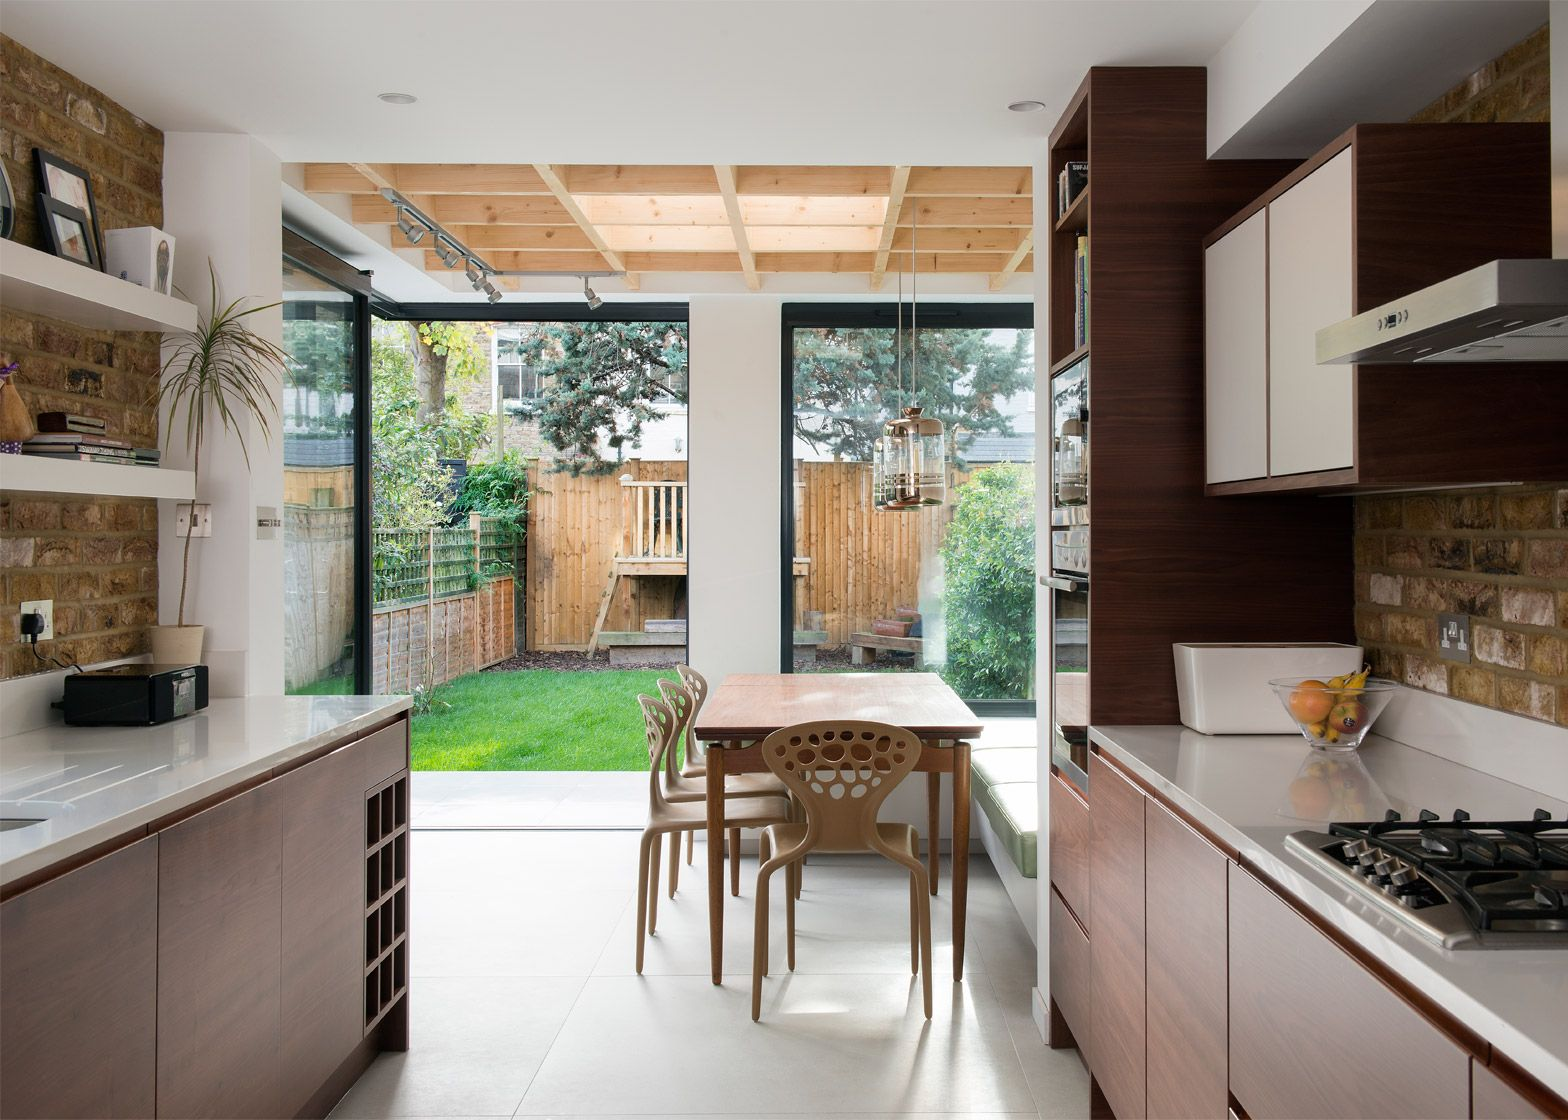 Craig and siobhans place by alexander owen architecture